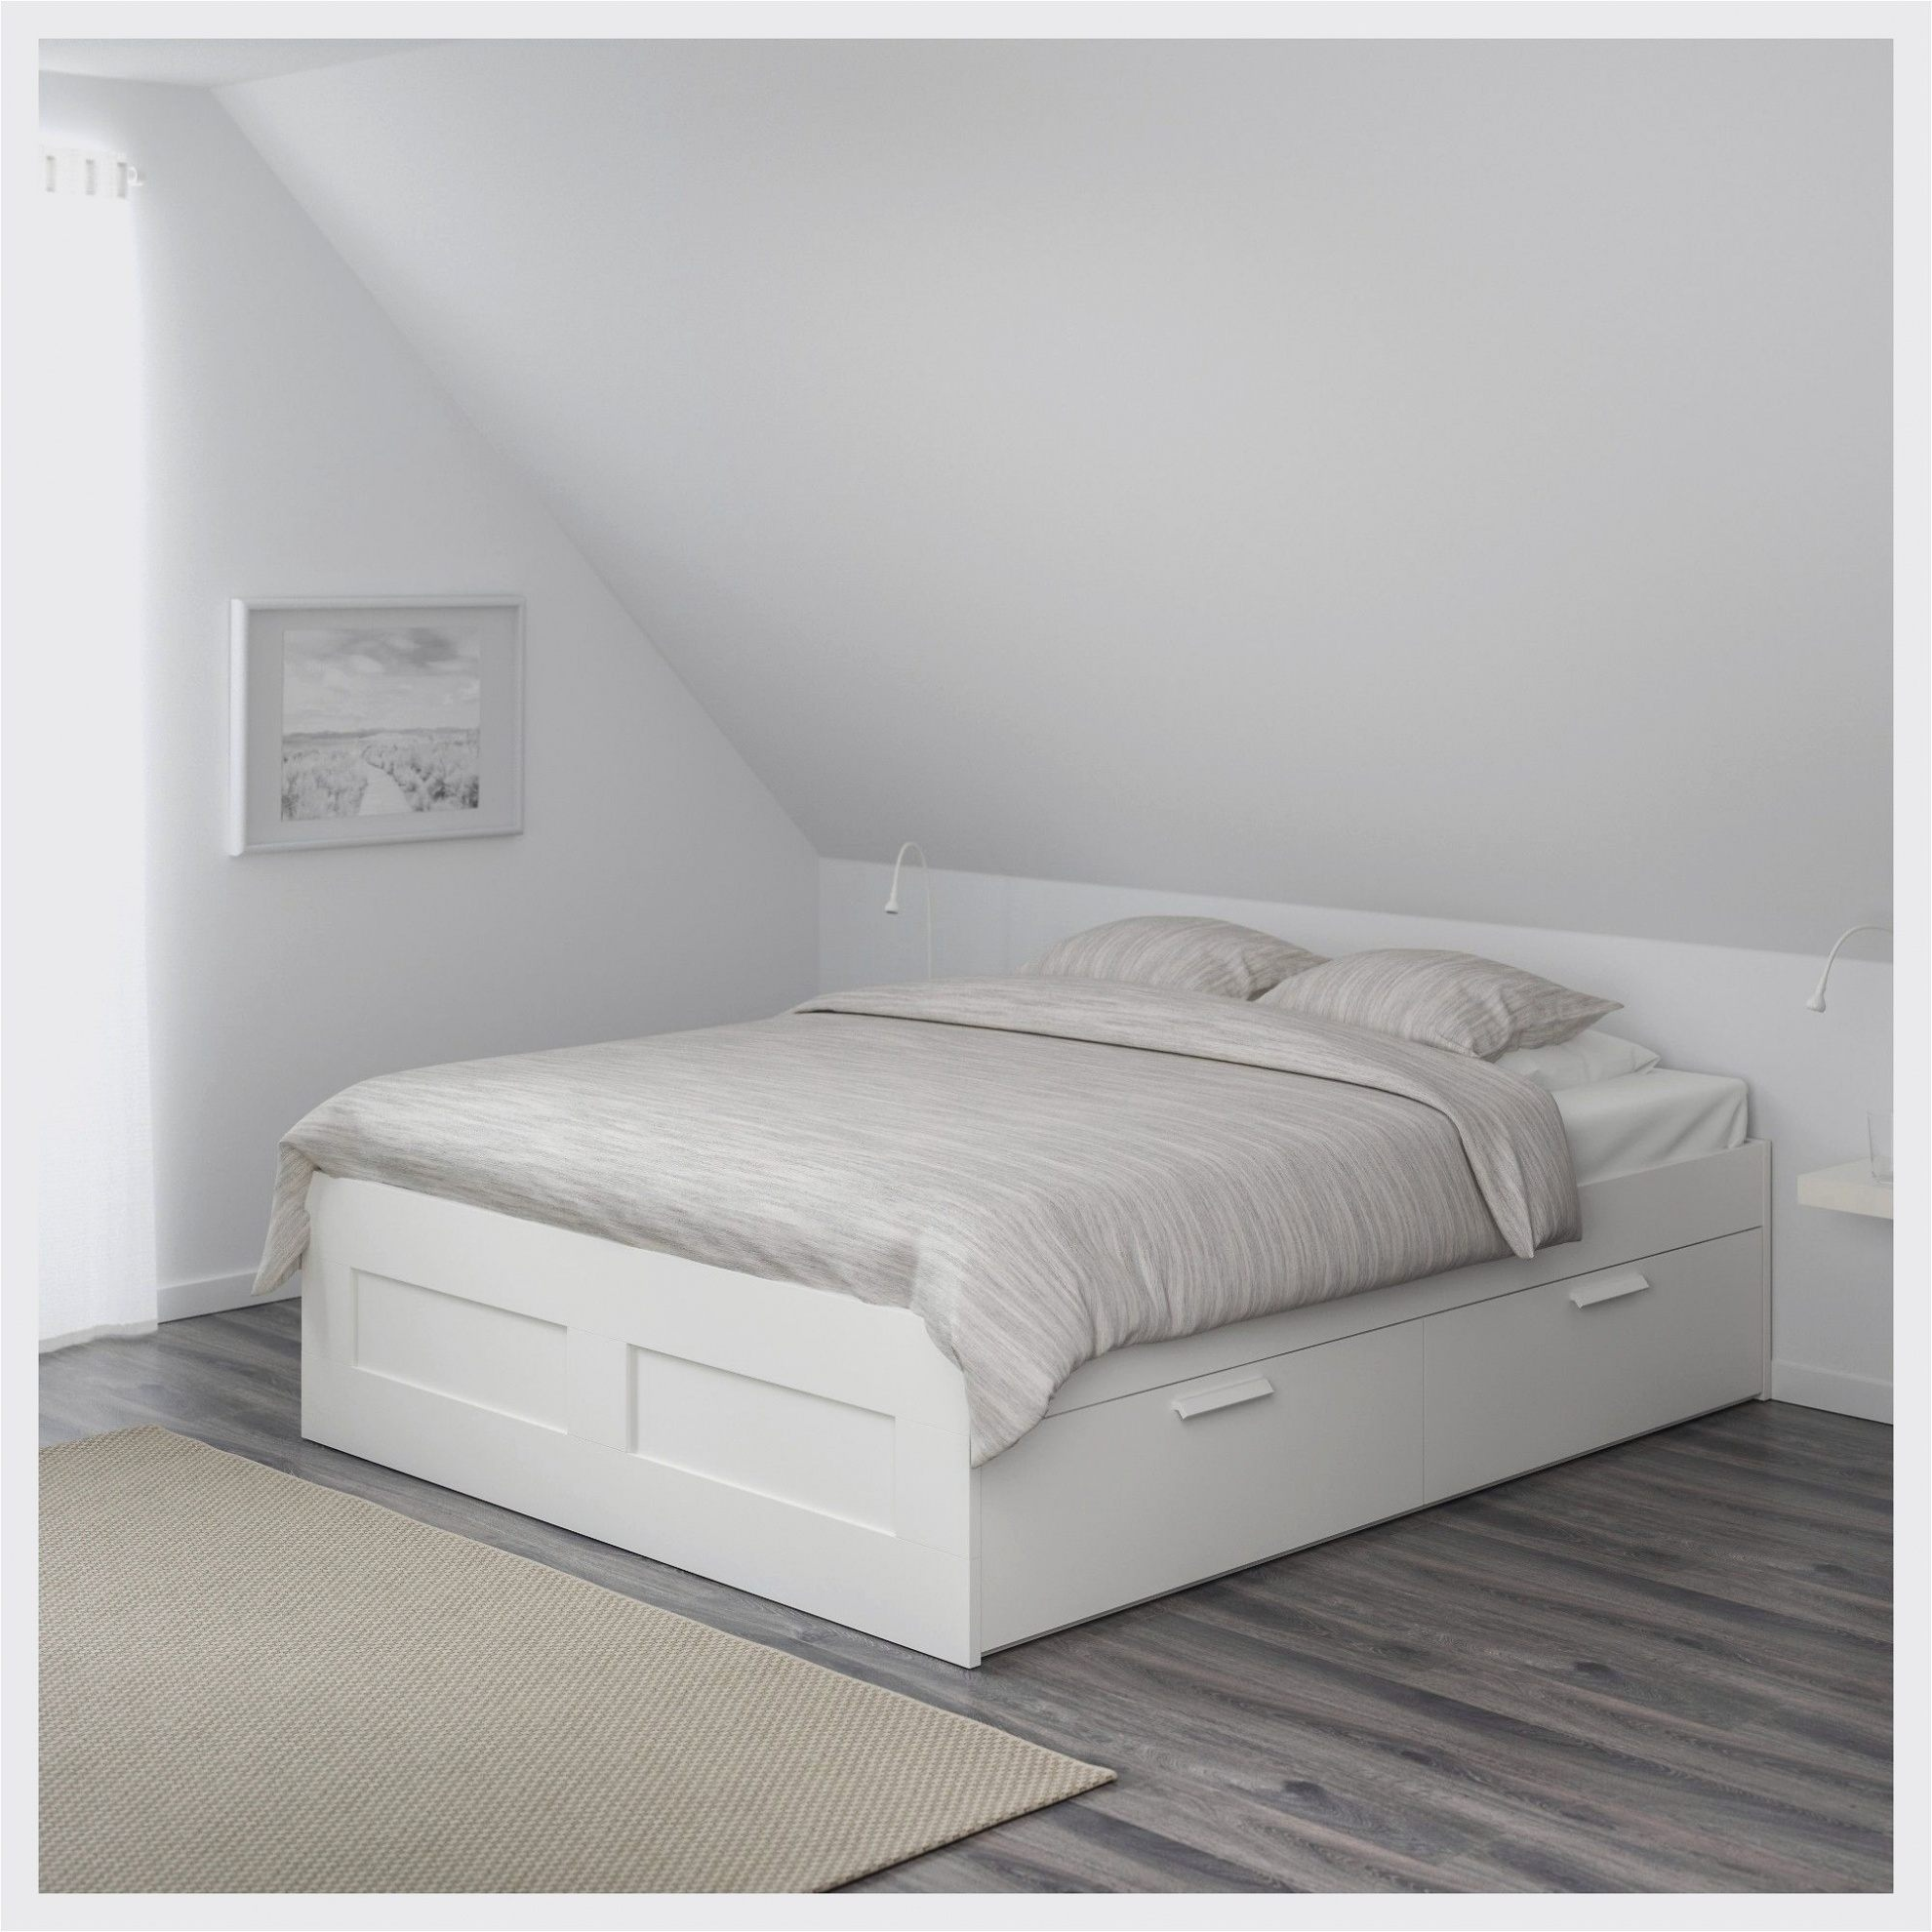 Tour De Lit Rose Pale Belle Cadre De Lit 140×190 tour De Lit Blanc — sovedis Aquatabs sove